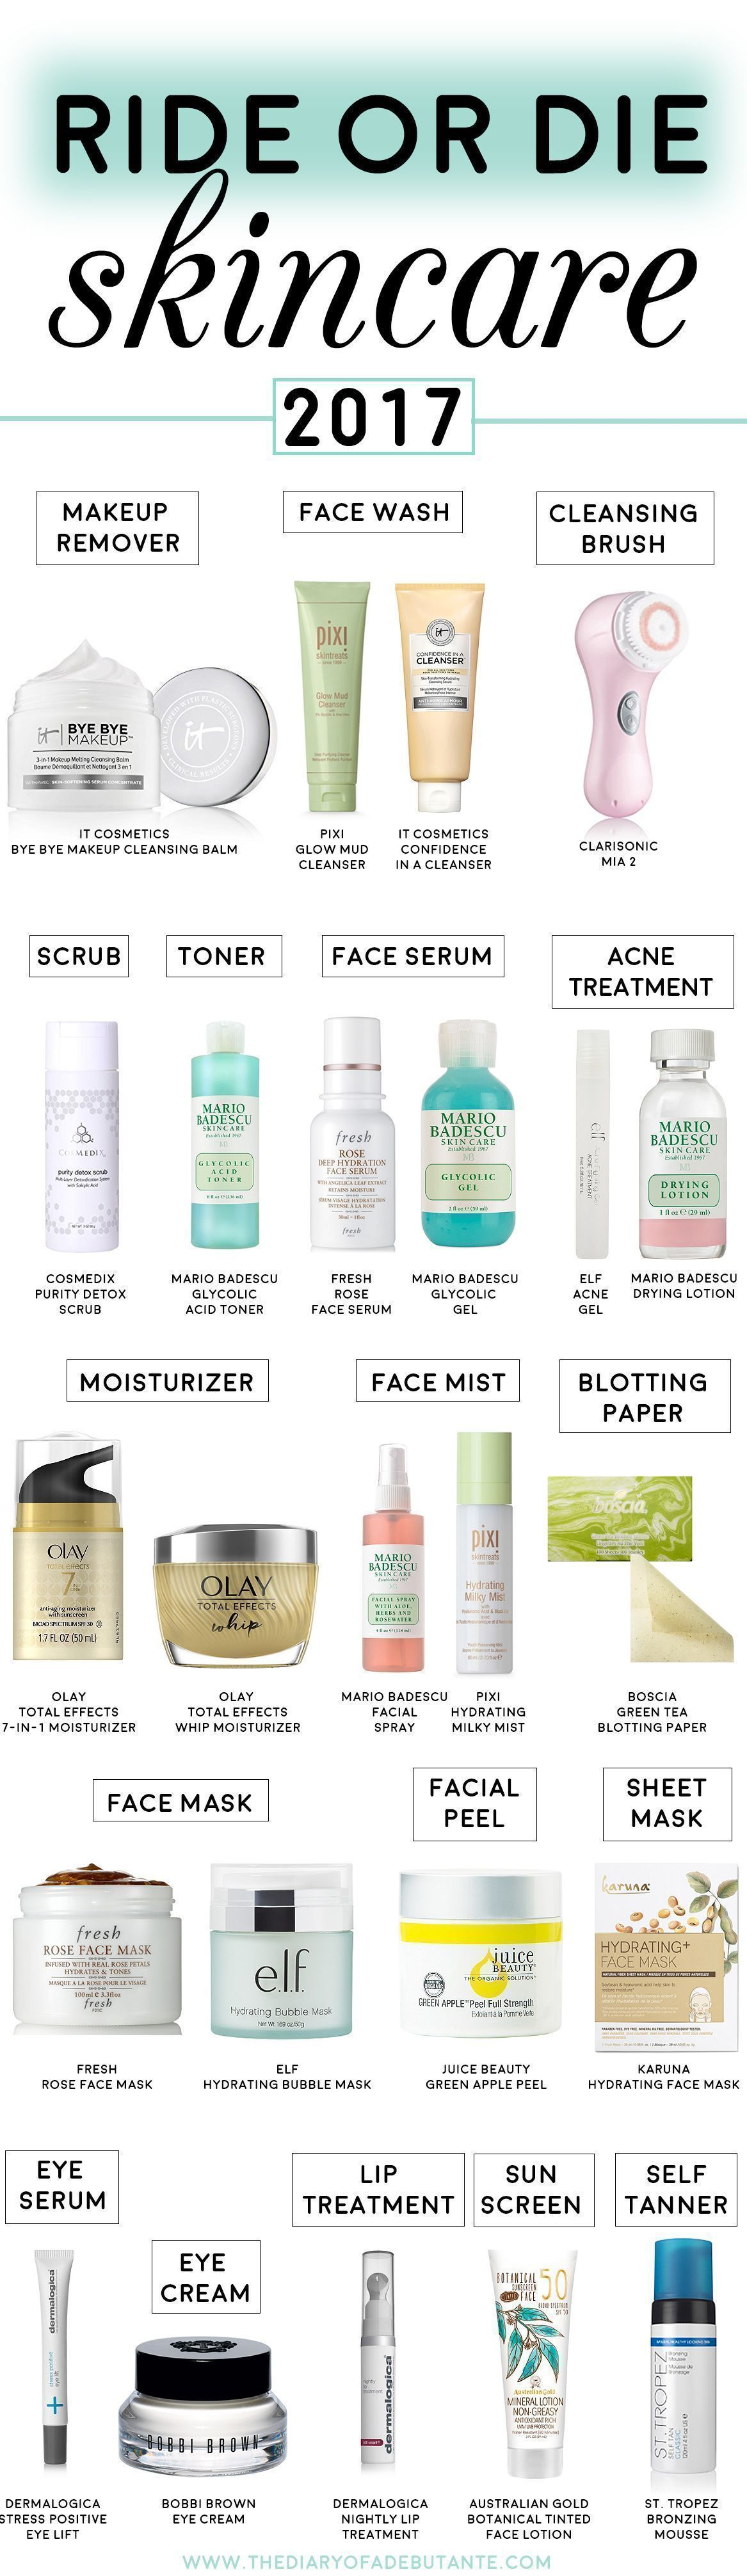 Best Skin And Facial Products For Oily Combination Skin Best Skincare Products For Acne Prone Skin Ride Or Die Skin Care Anti Aging Skin Products Acne Skin